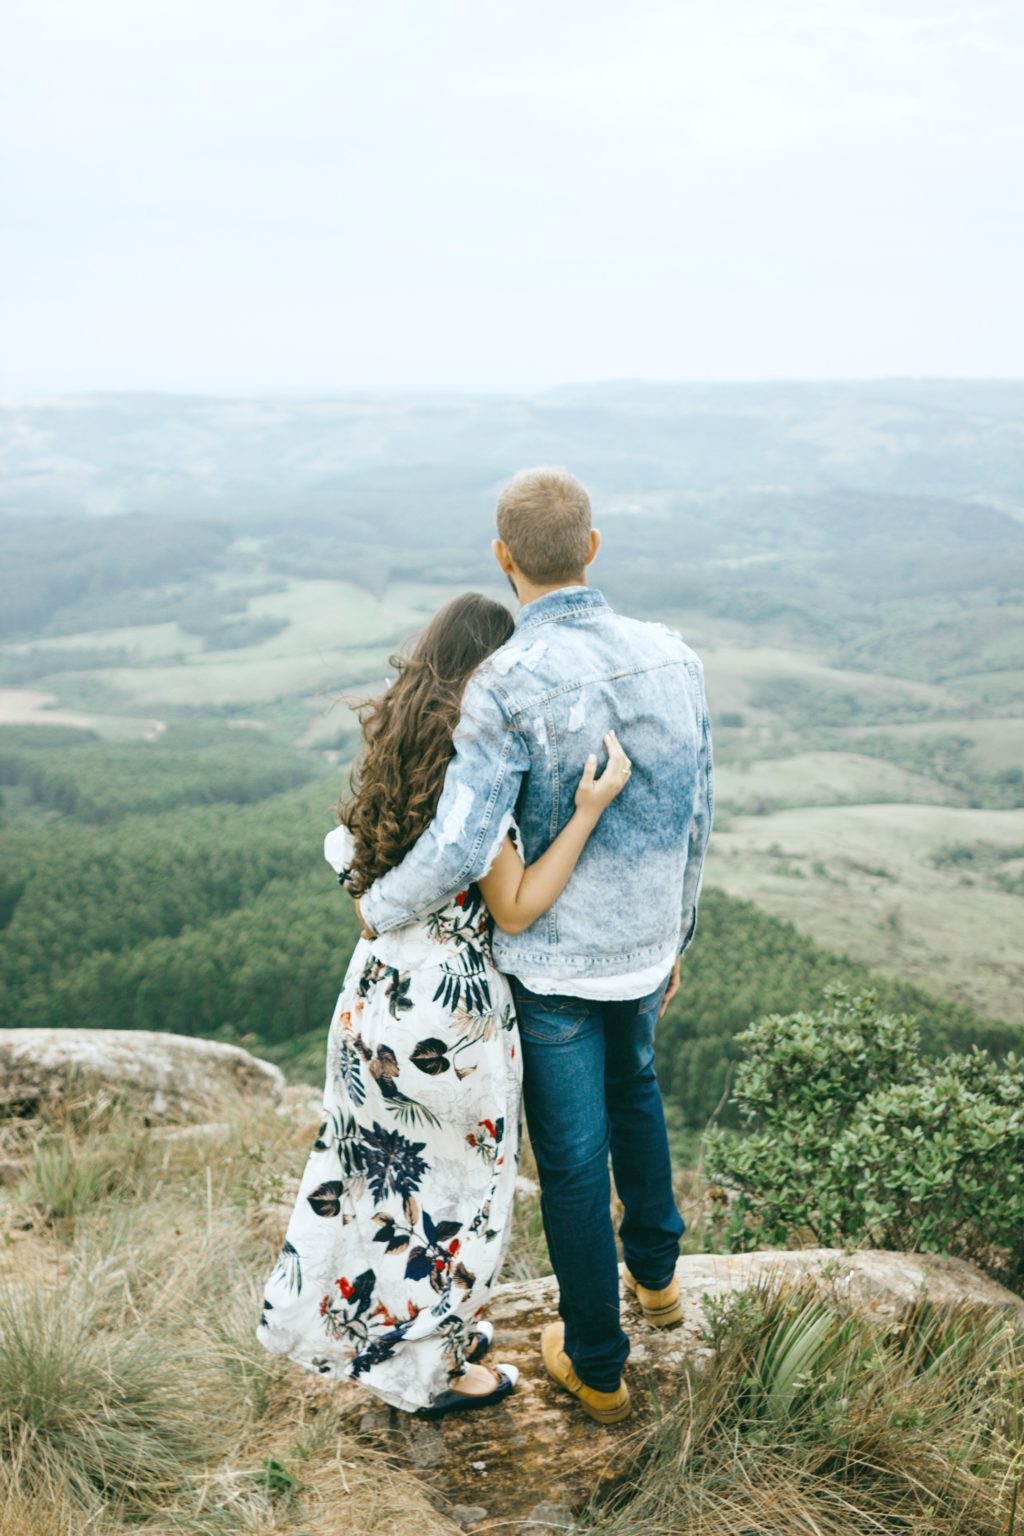 A couple looks over a hill together, only their backs are seen.